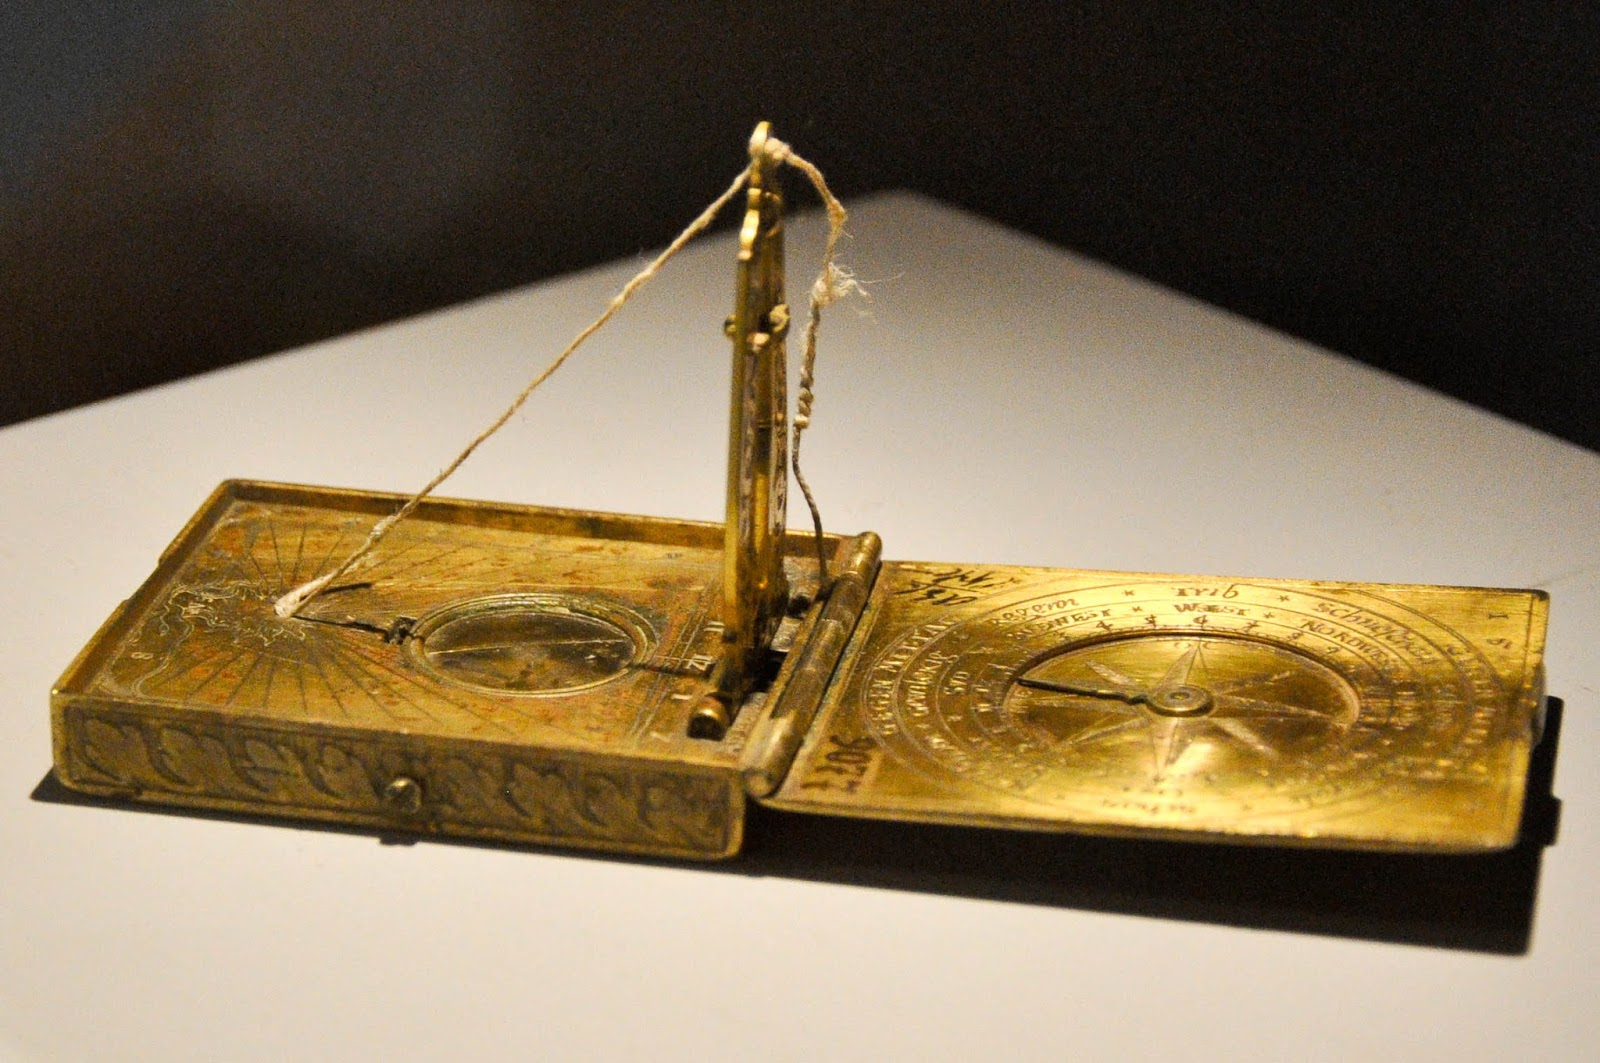 A medieval compass, Runkelstein Castle, Bolzano, South Tyrol, Italy